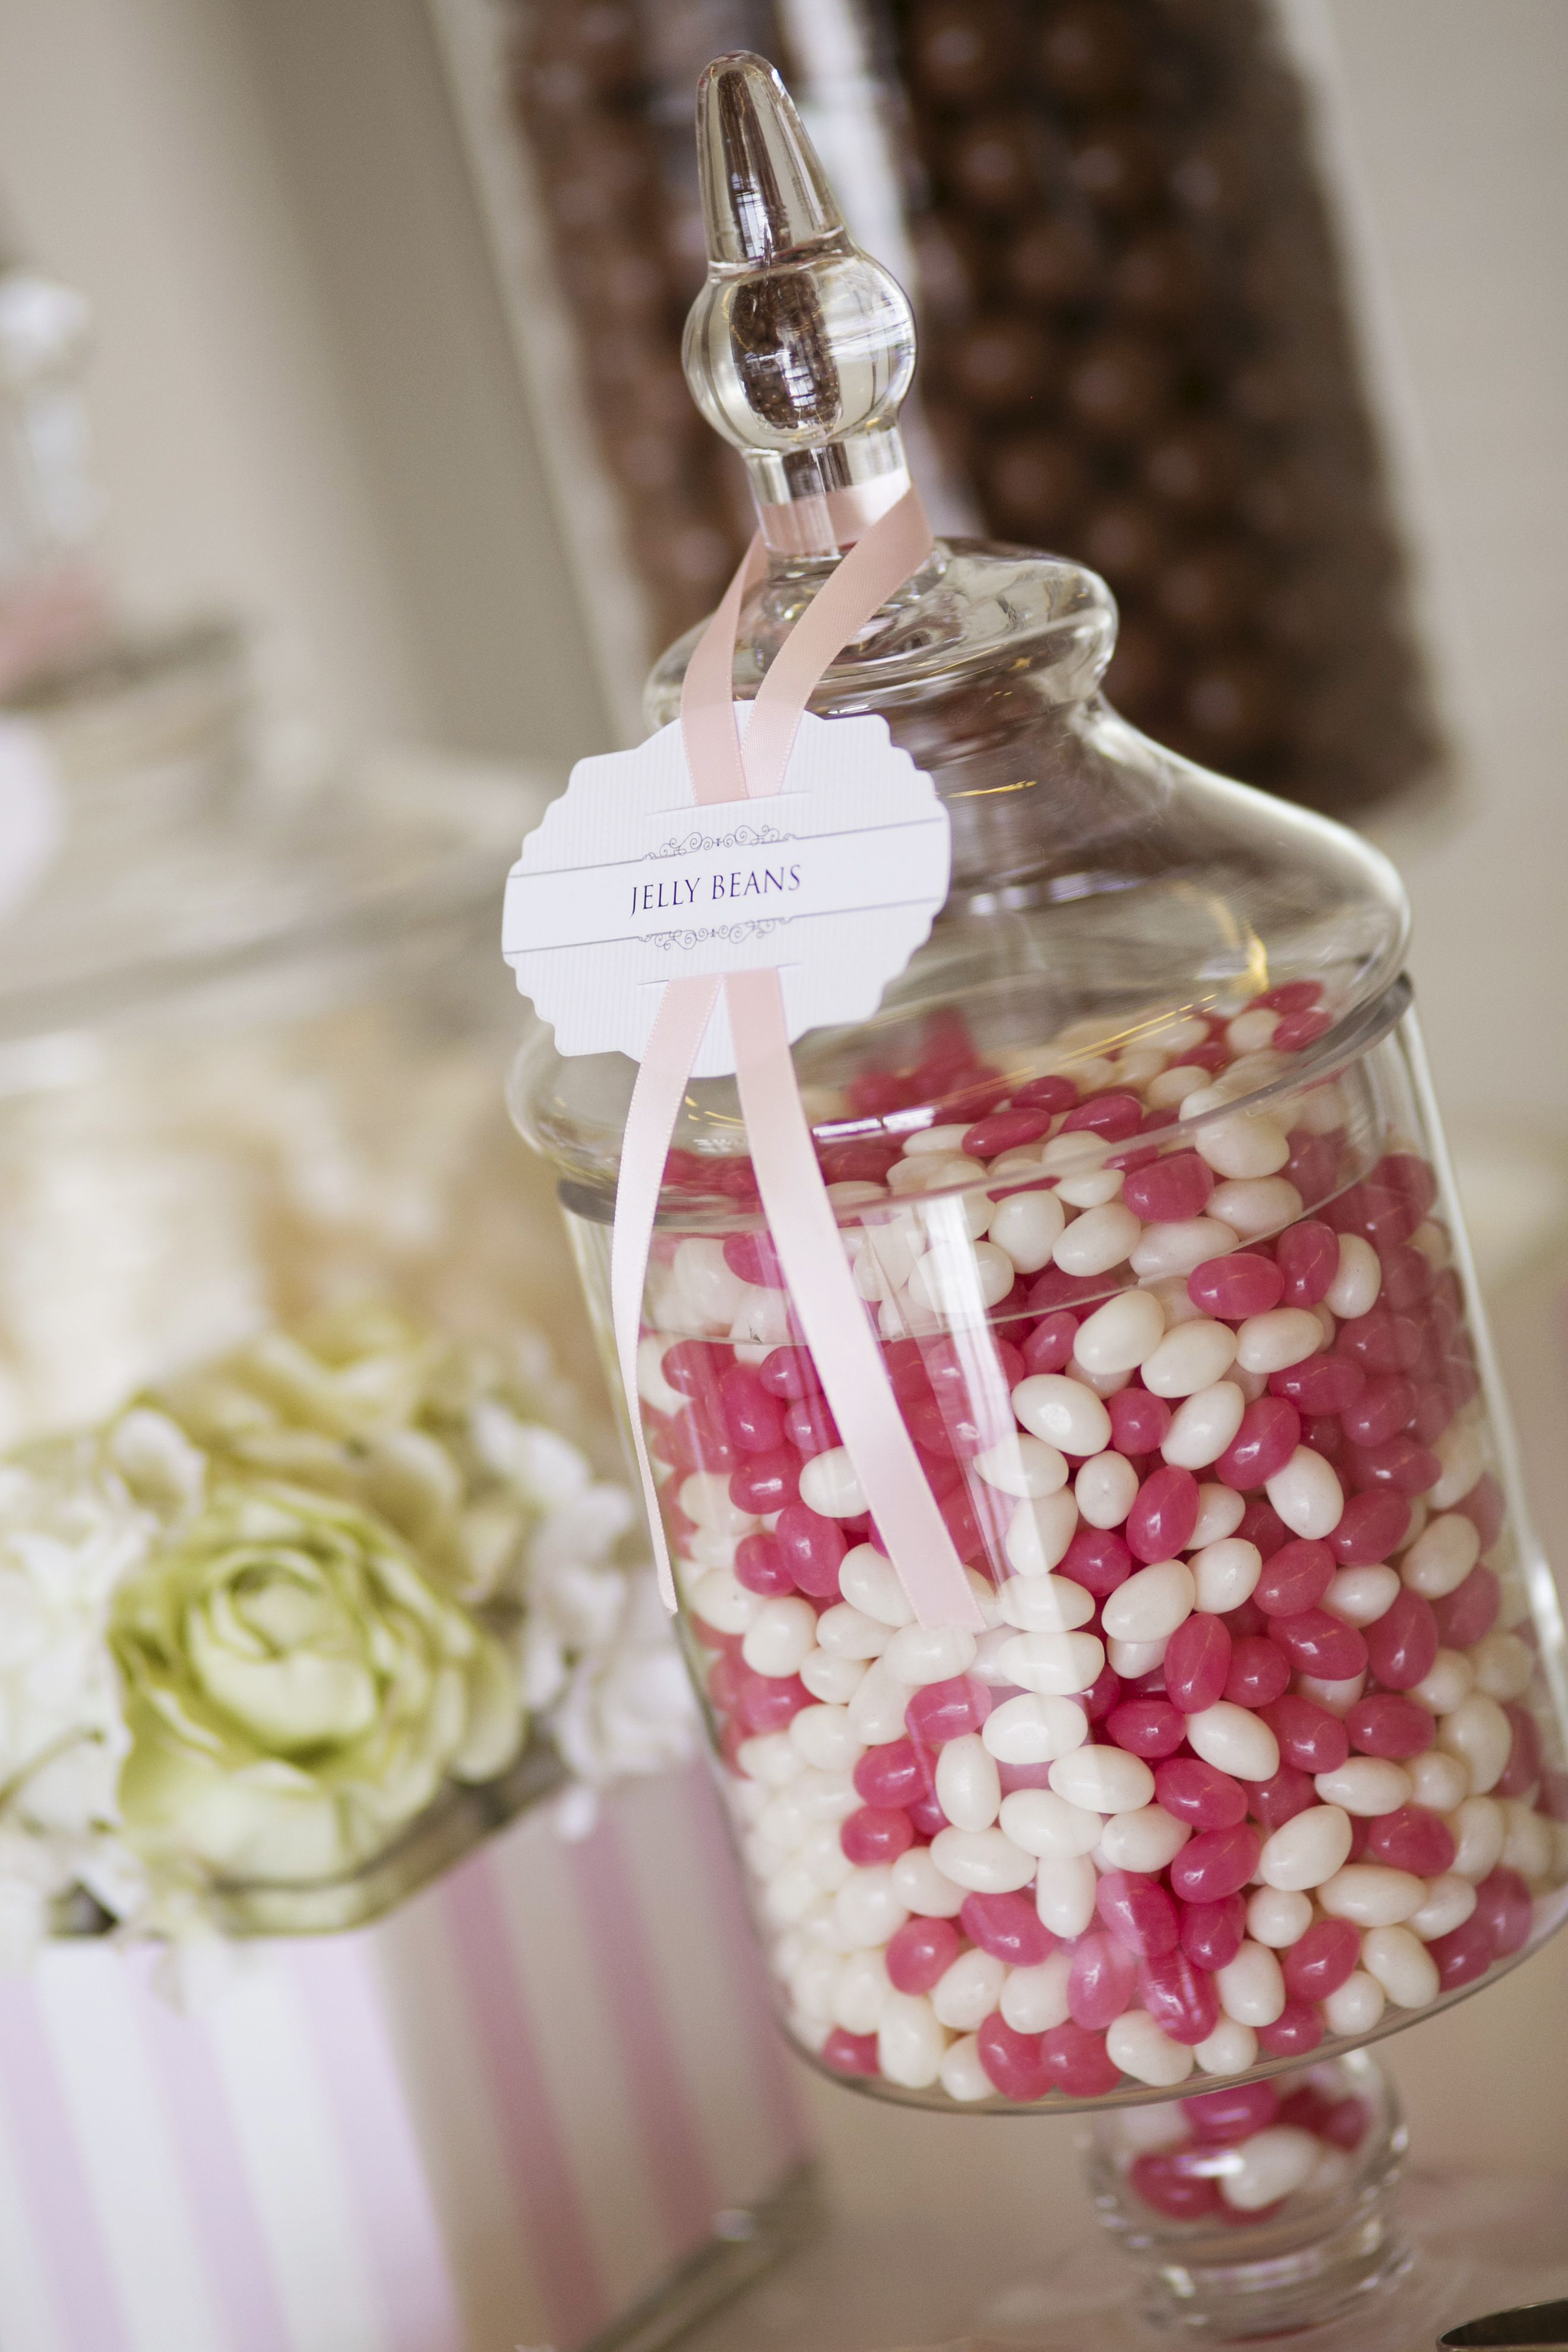 Jellybean 1 of sweet on wedding dessert table | itakeyou.co.uk